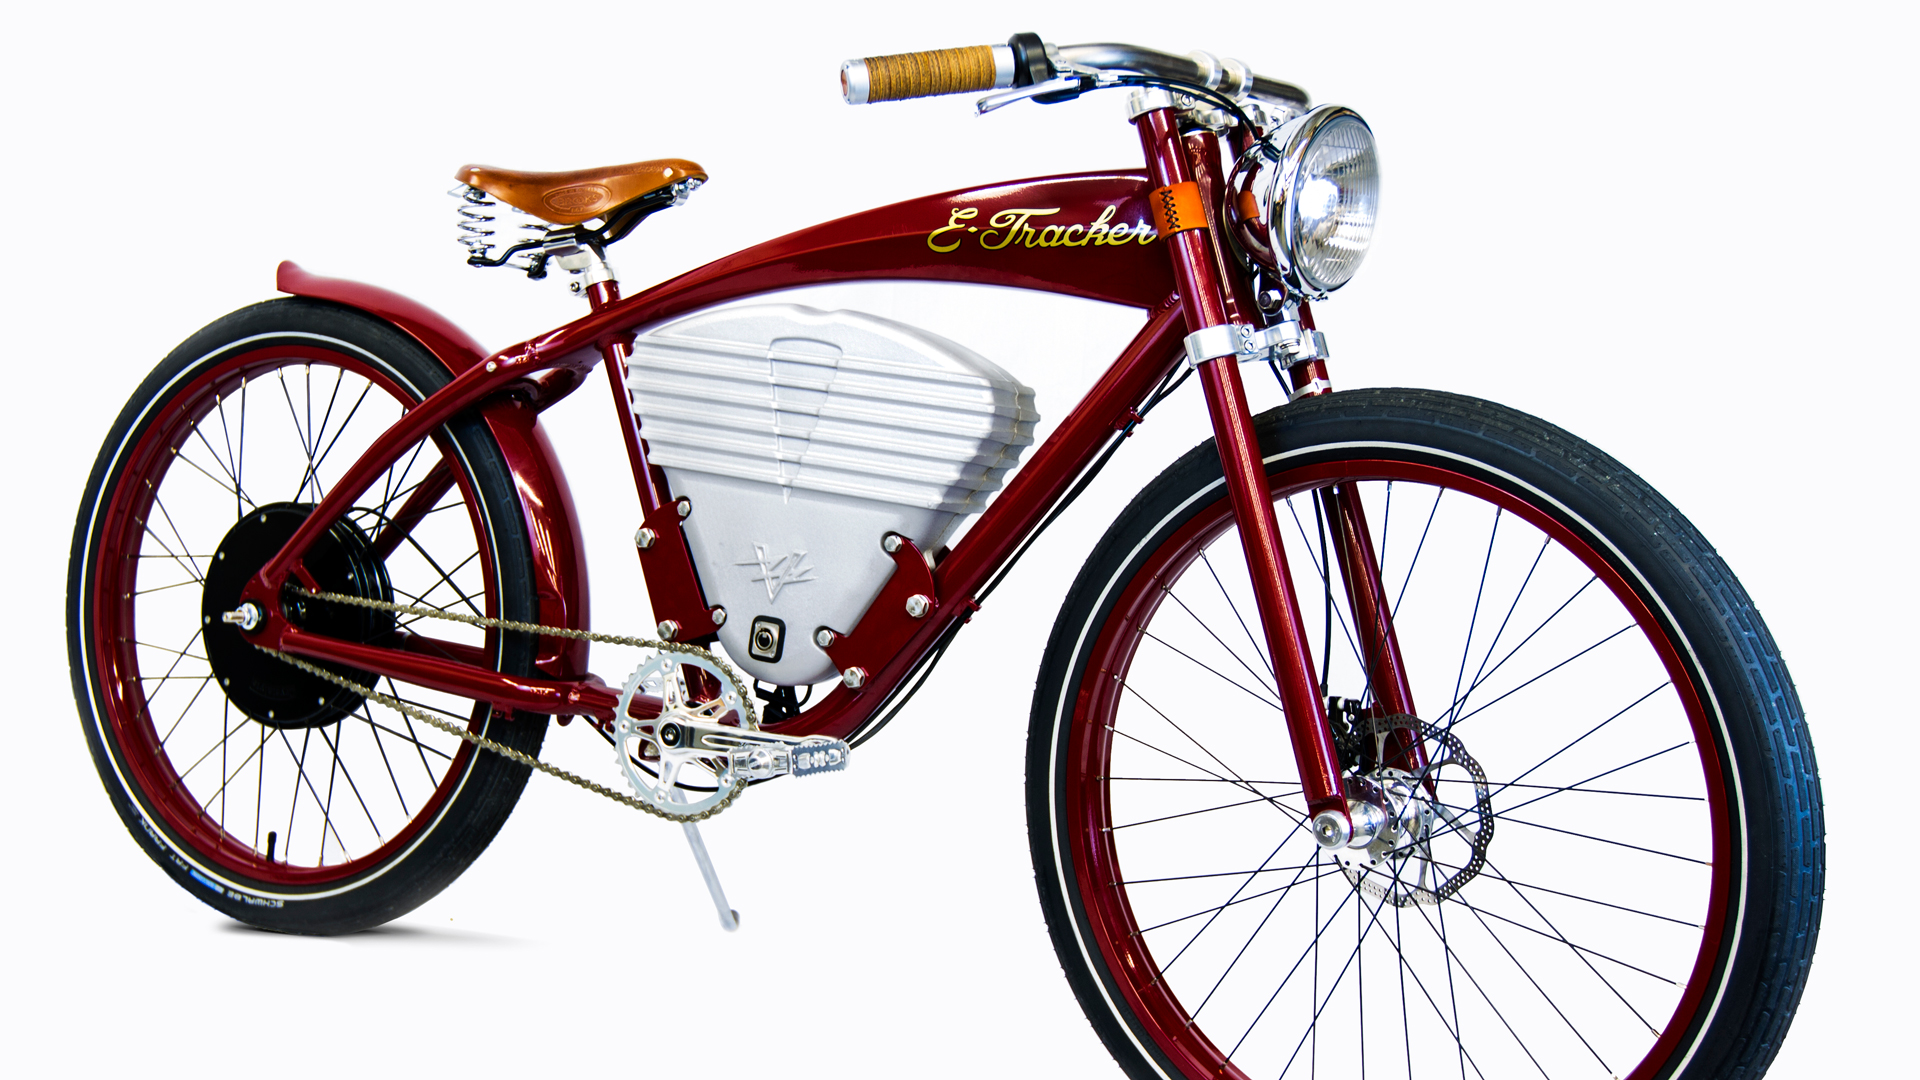 Luxury Tech Gifts Vintage Electric Bikes Toysforbigboys Com